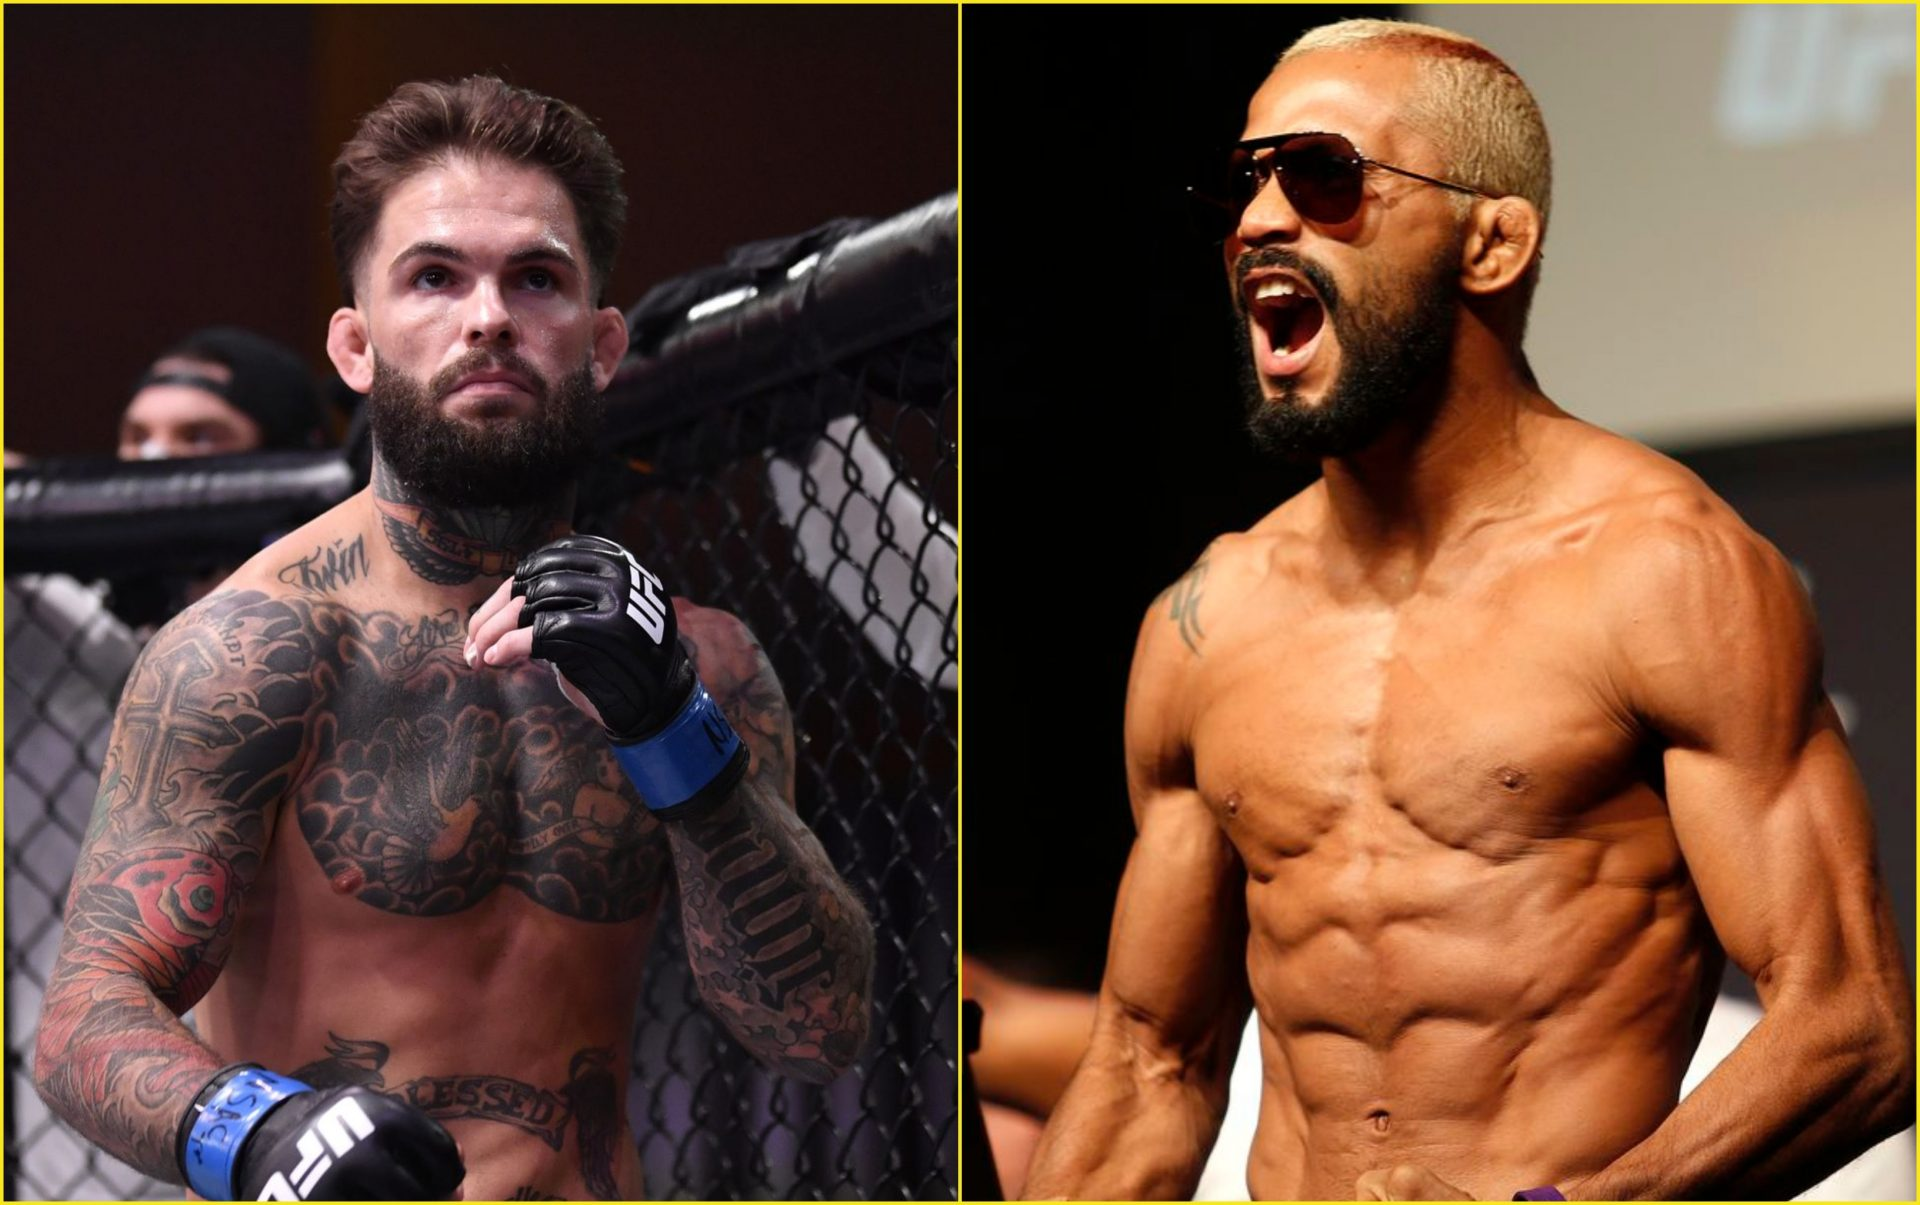 Cody Garbrandt calls out Deiveson Figueiredo, says he's No.1 contender at 125lbs - Cody Garbrandt